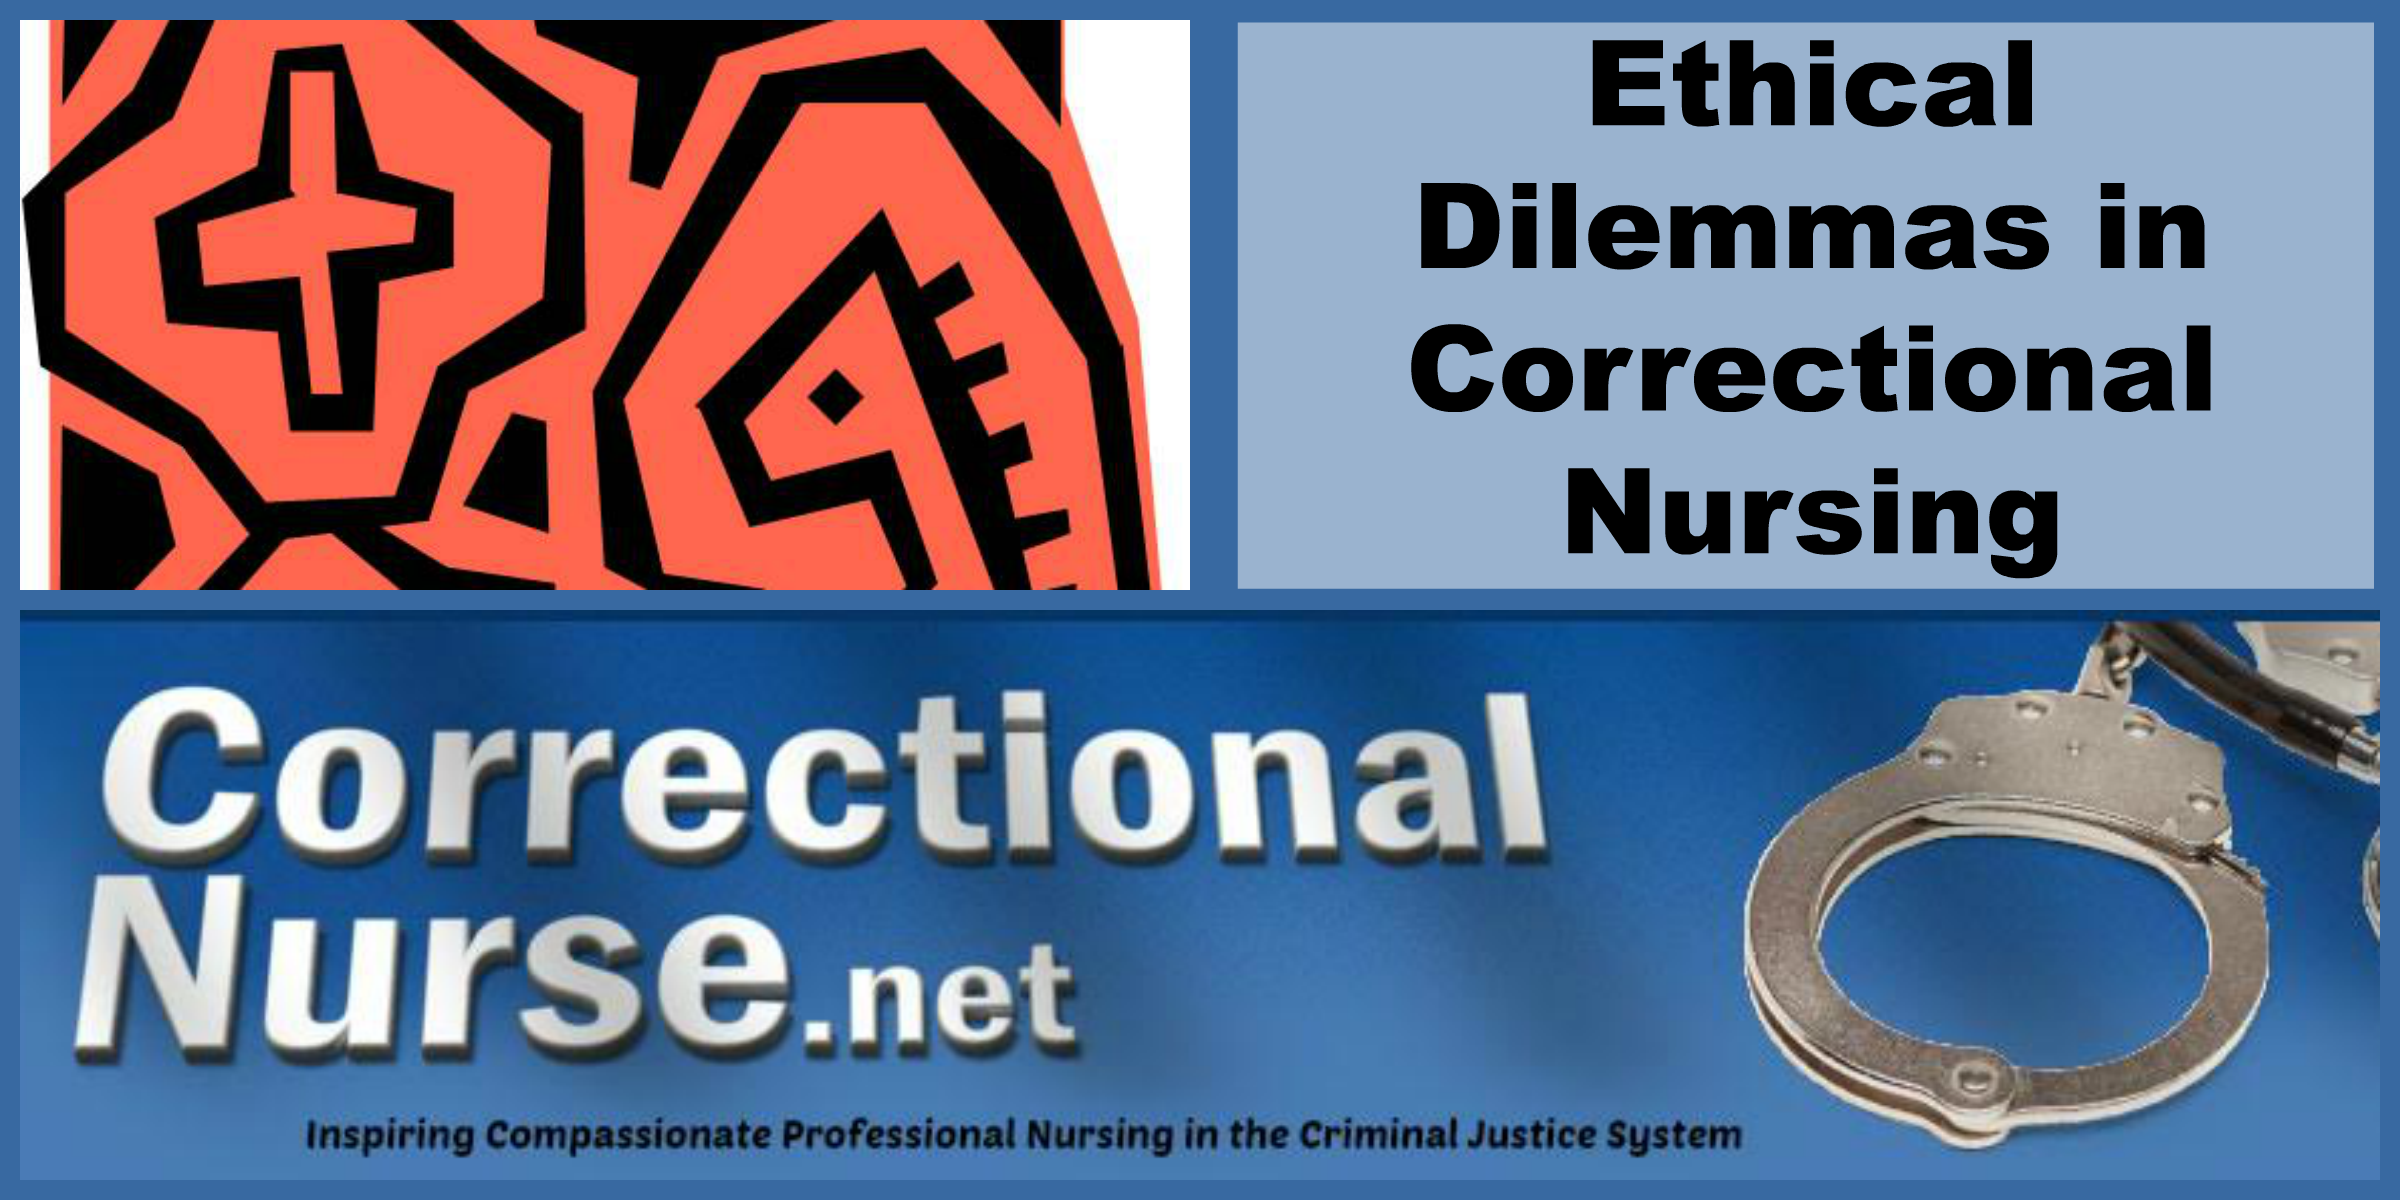 top five ethical issues in human Legal & ethical issues that health care professionals face  five top ethical issues in healthcare  code of ethics for human service workers.